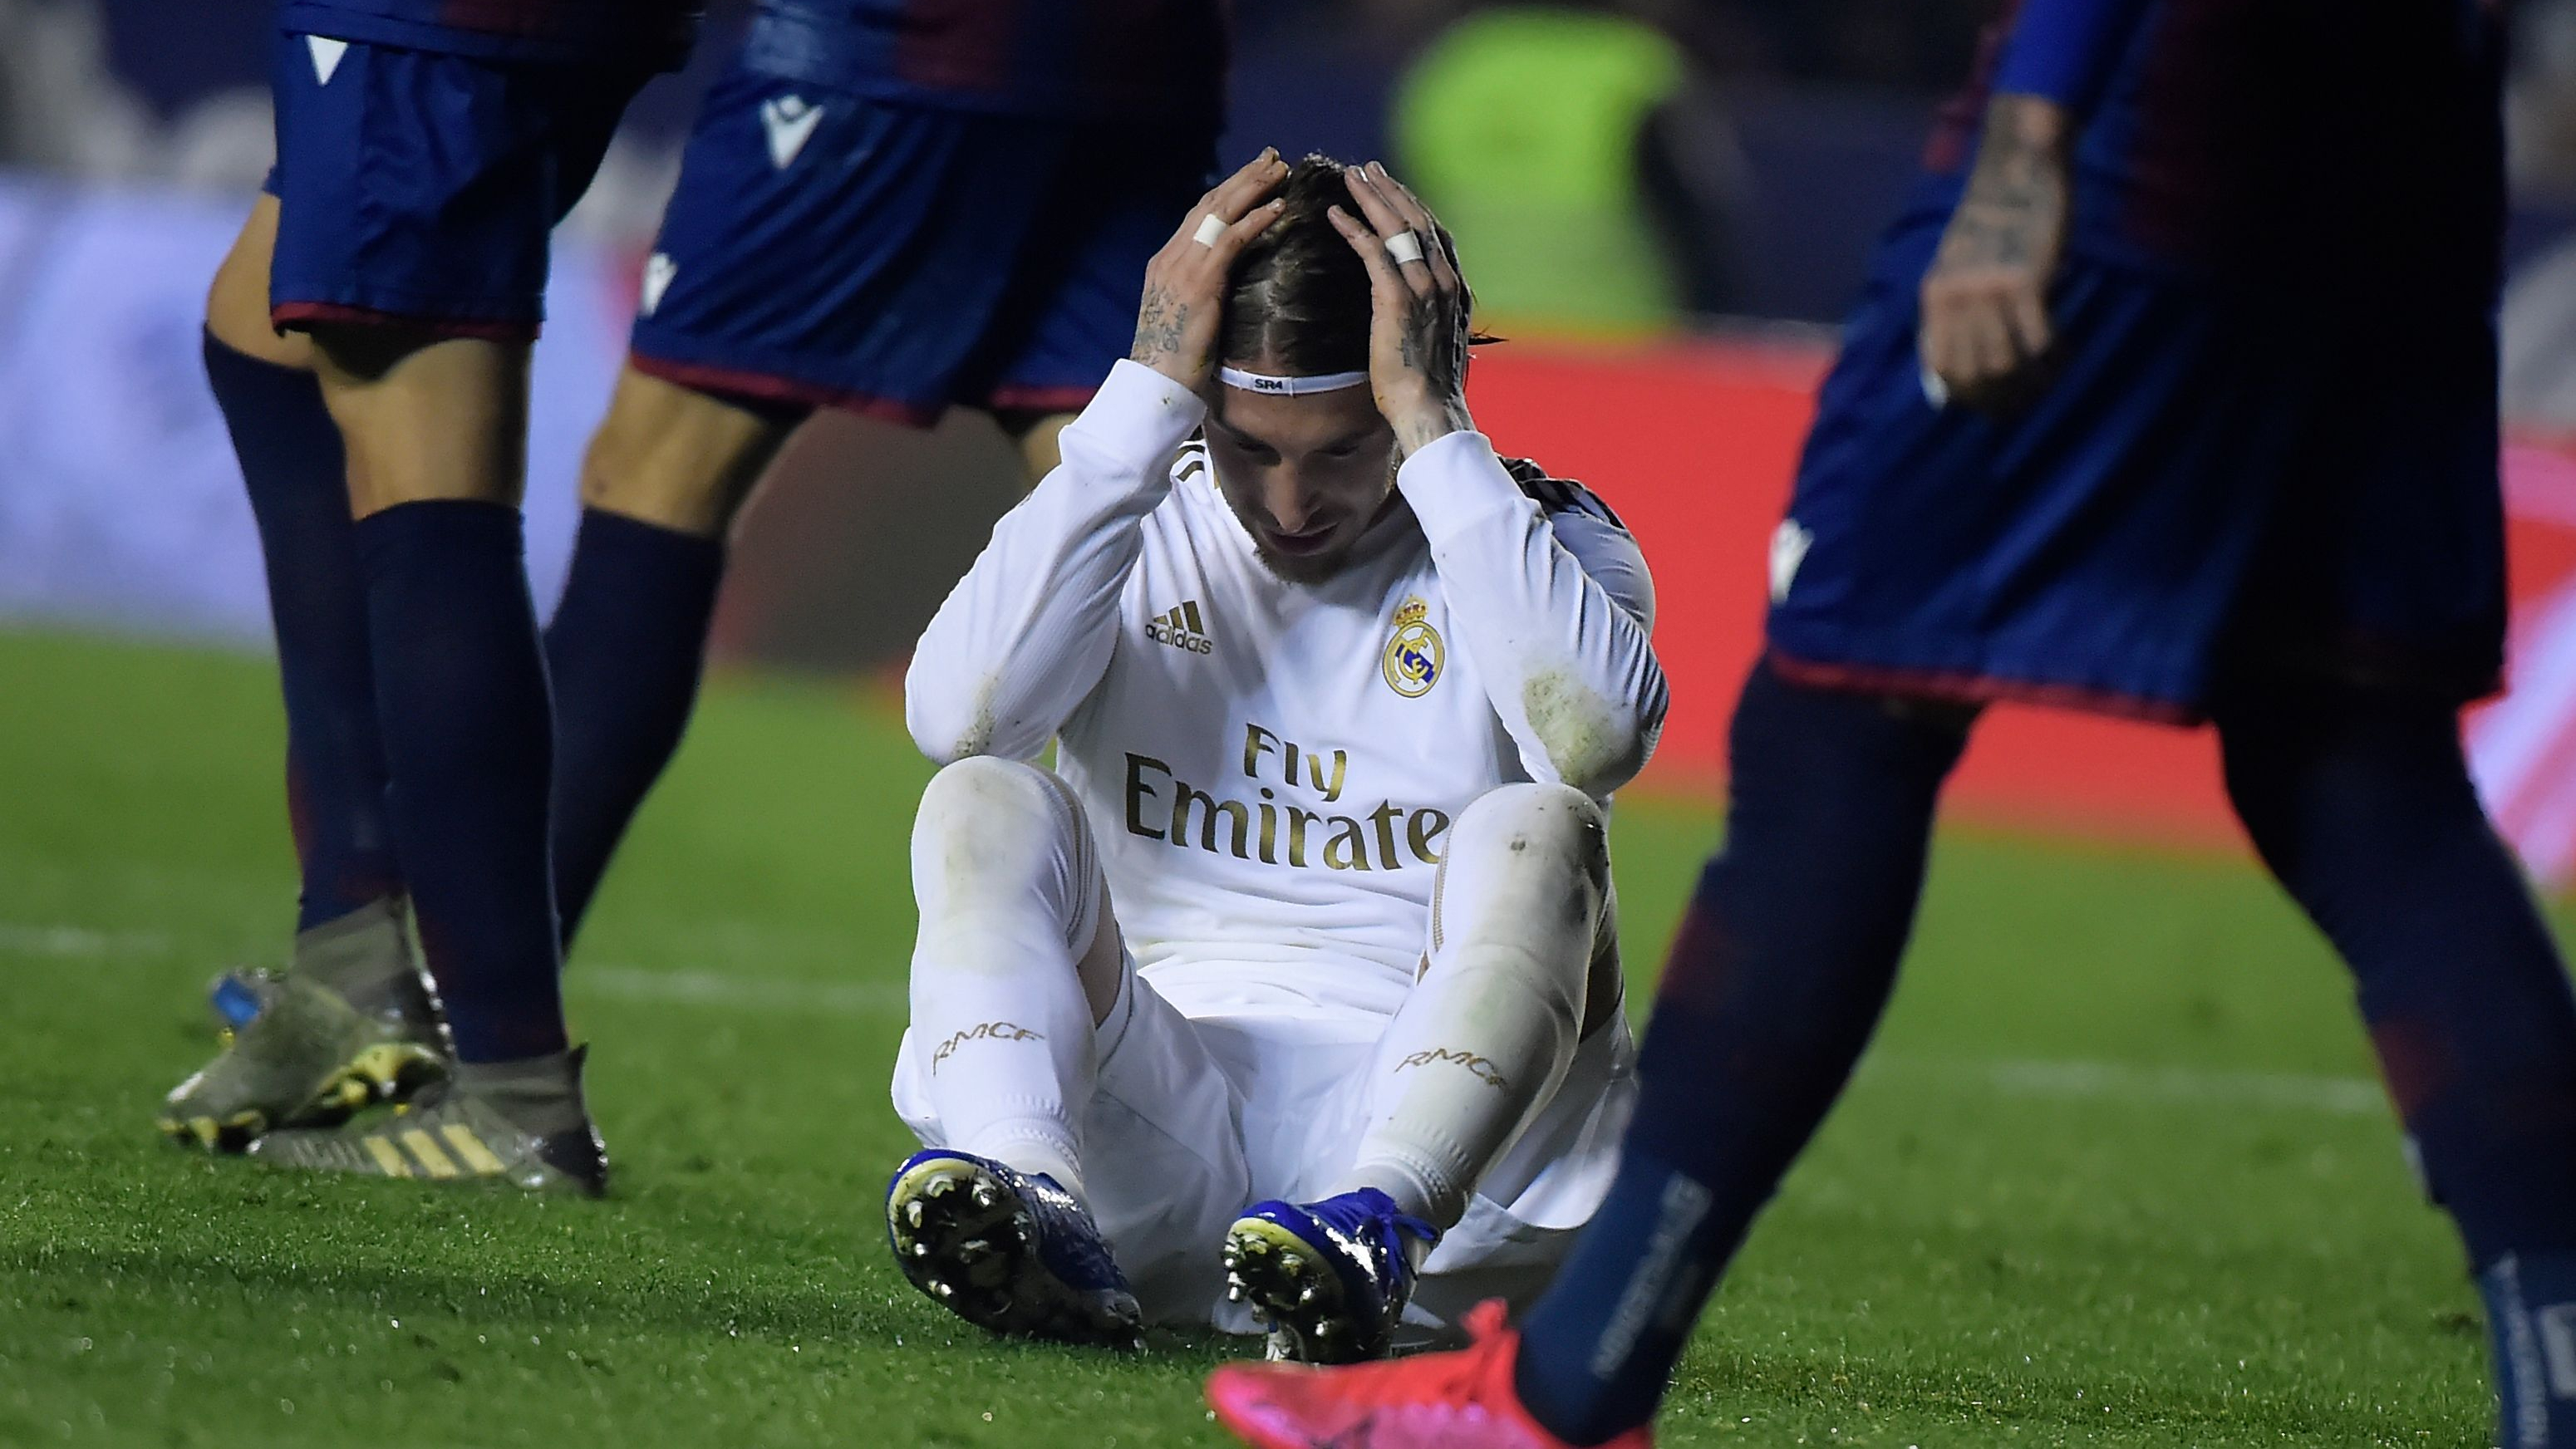 Ramos hits out at referee following Real Madrid defeat: I asked if he had a personal problem with me